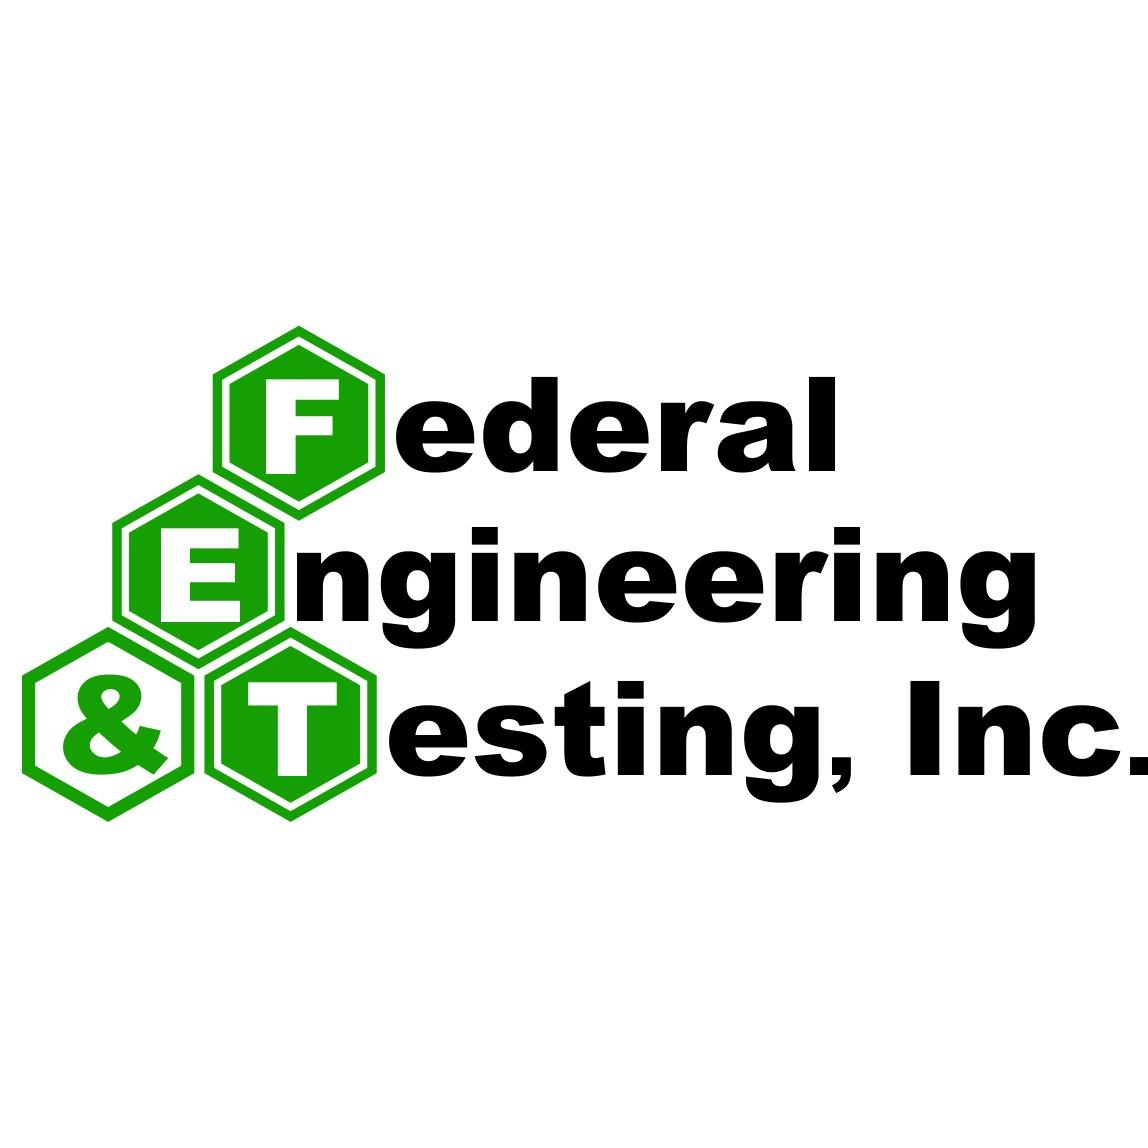 Federal Engineering and Testing, Inc. image 11